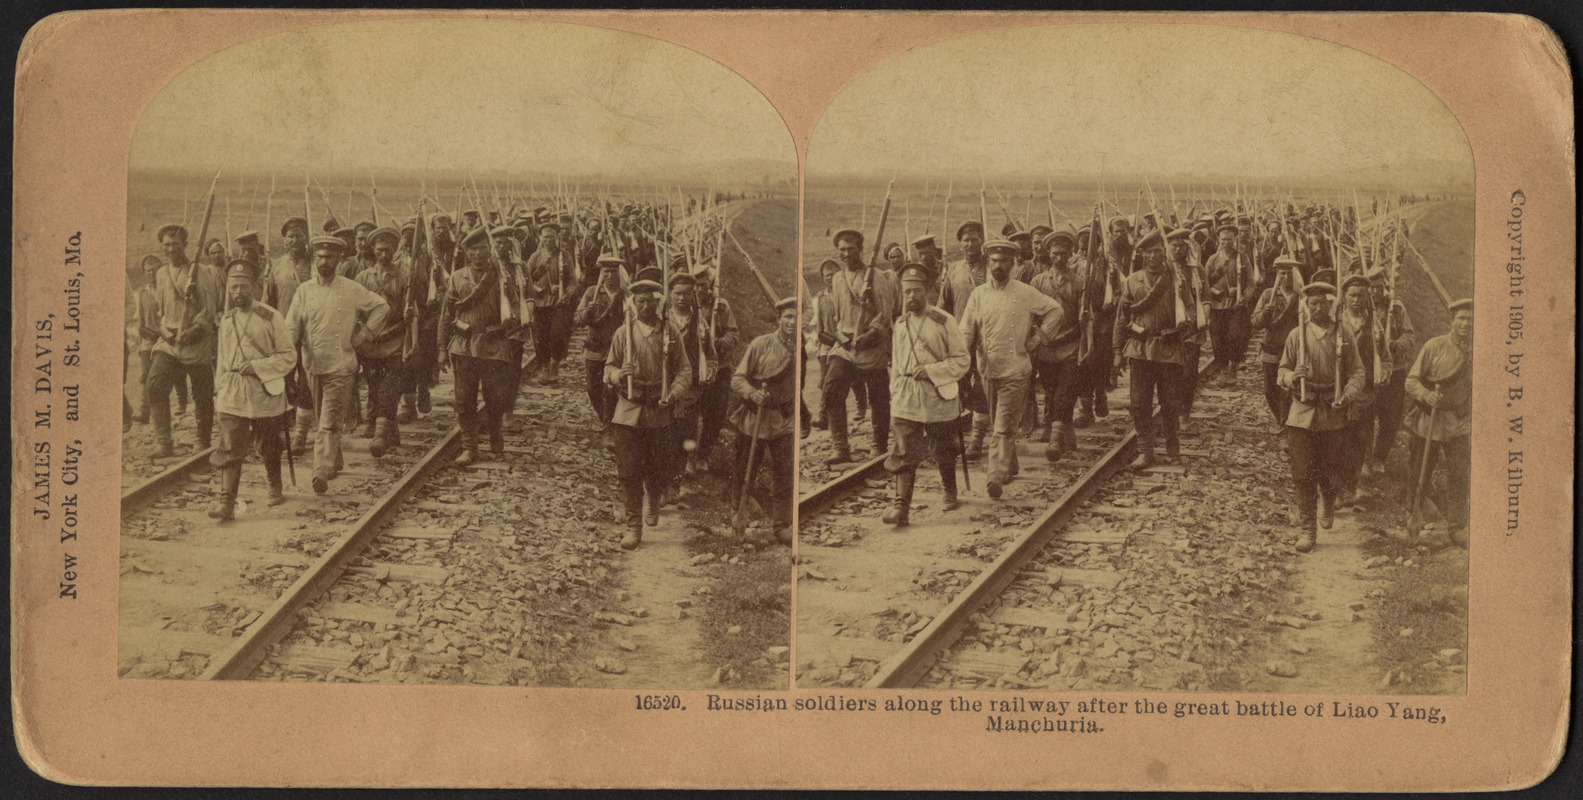 Russian soldiers along the railway after the great battle of Liao Yang, Manchuria